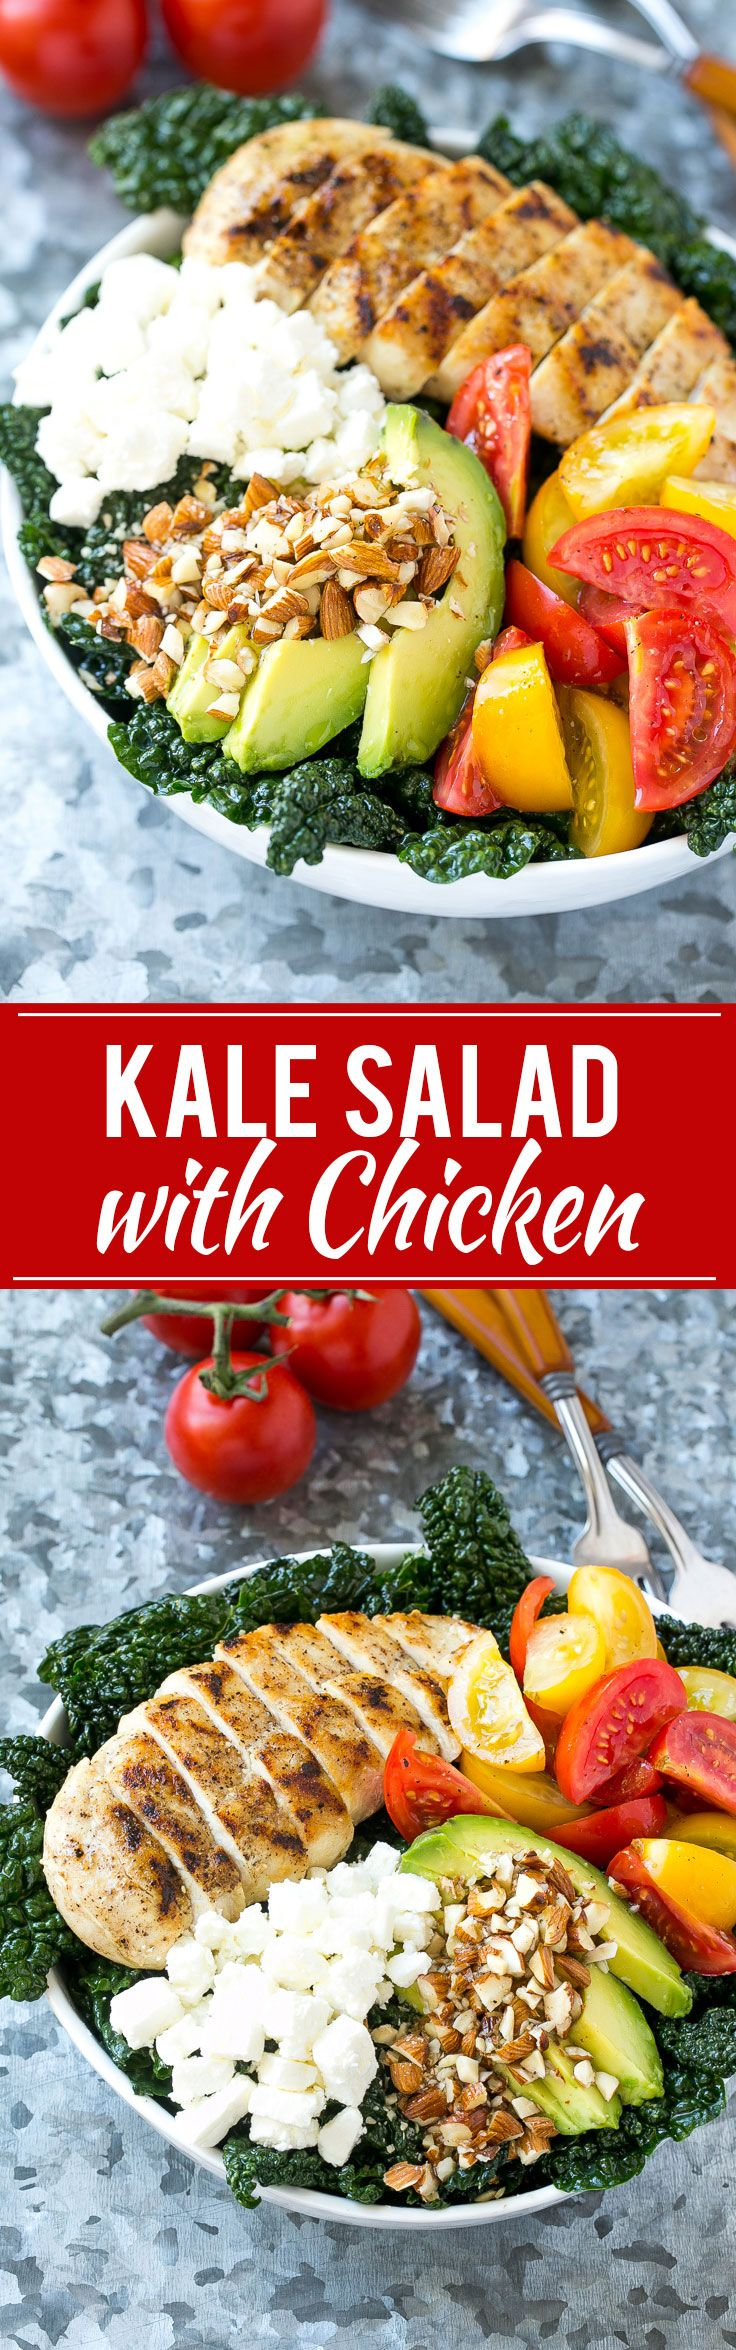 Tuscan Kale Sala - Full of kale, grilled chicken, avocado, tomatoes, almonds and feta cheese, all tossed in a simple lemon dressing. An easy and healthy meal!